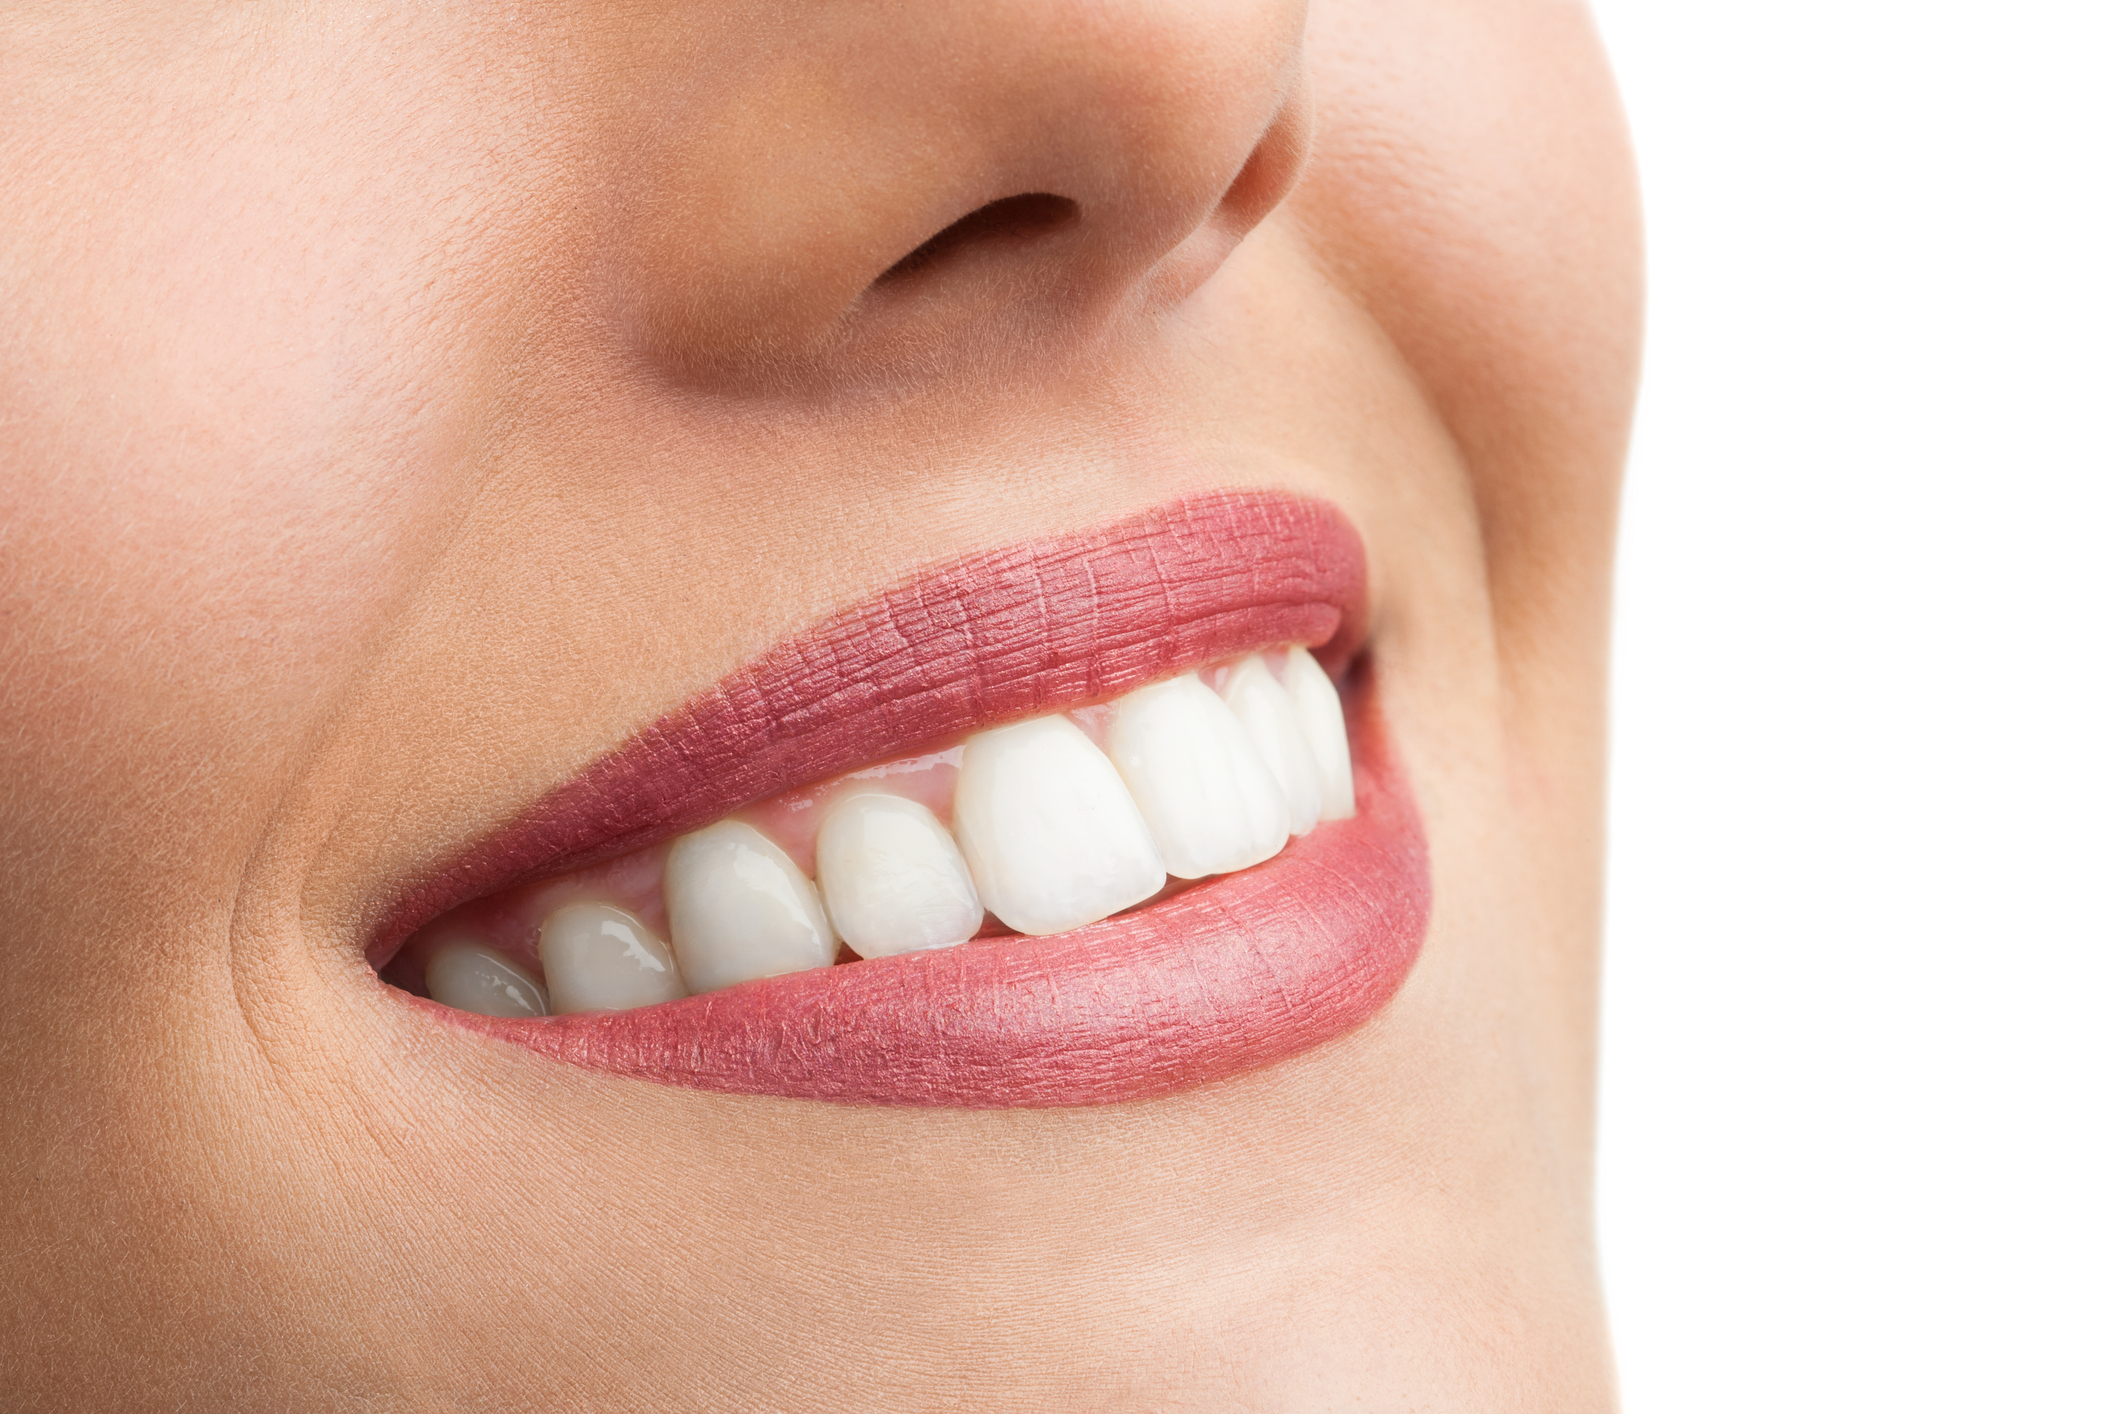 Watergate Dental is pleased to offer Invisalign